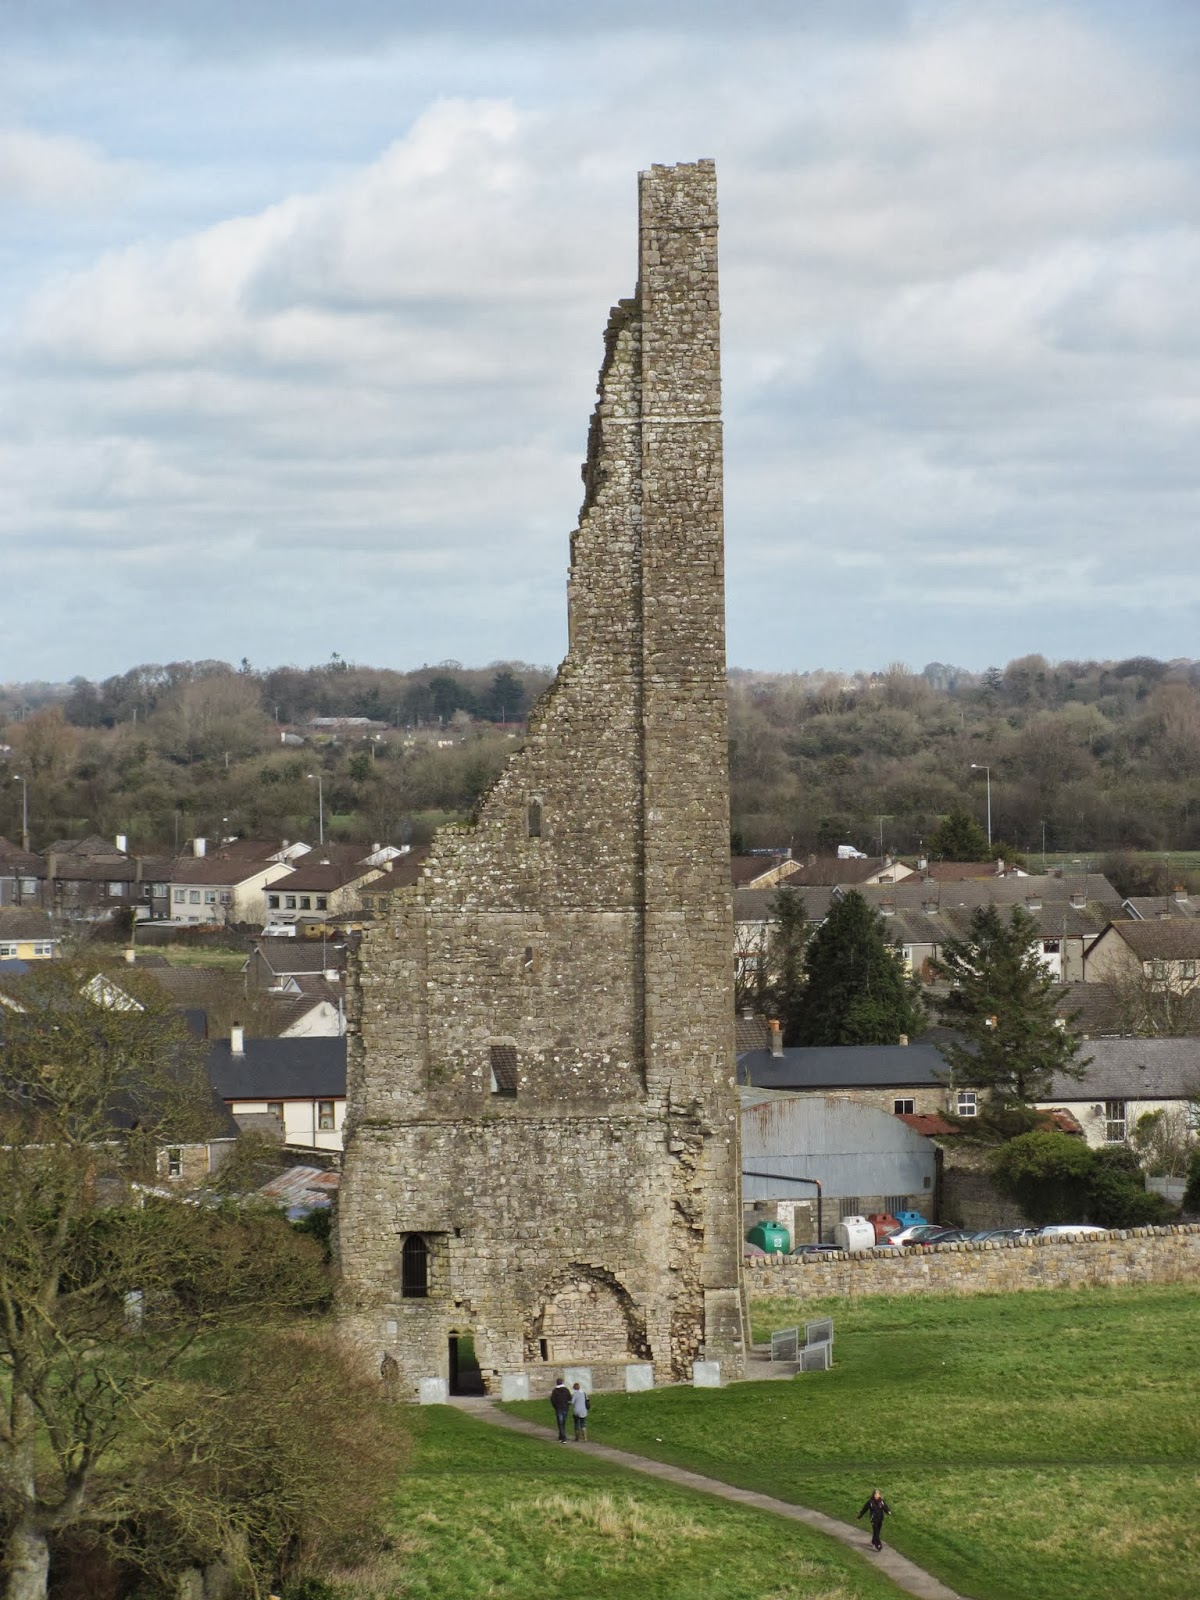 The Yellow Steeple in Trim, Ireland